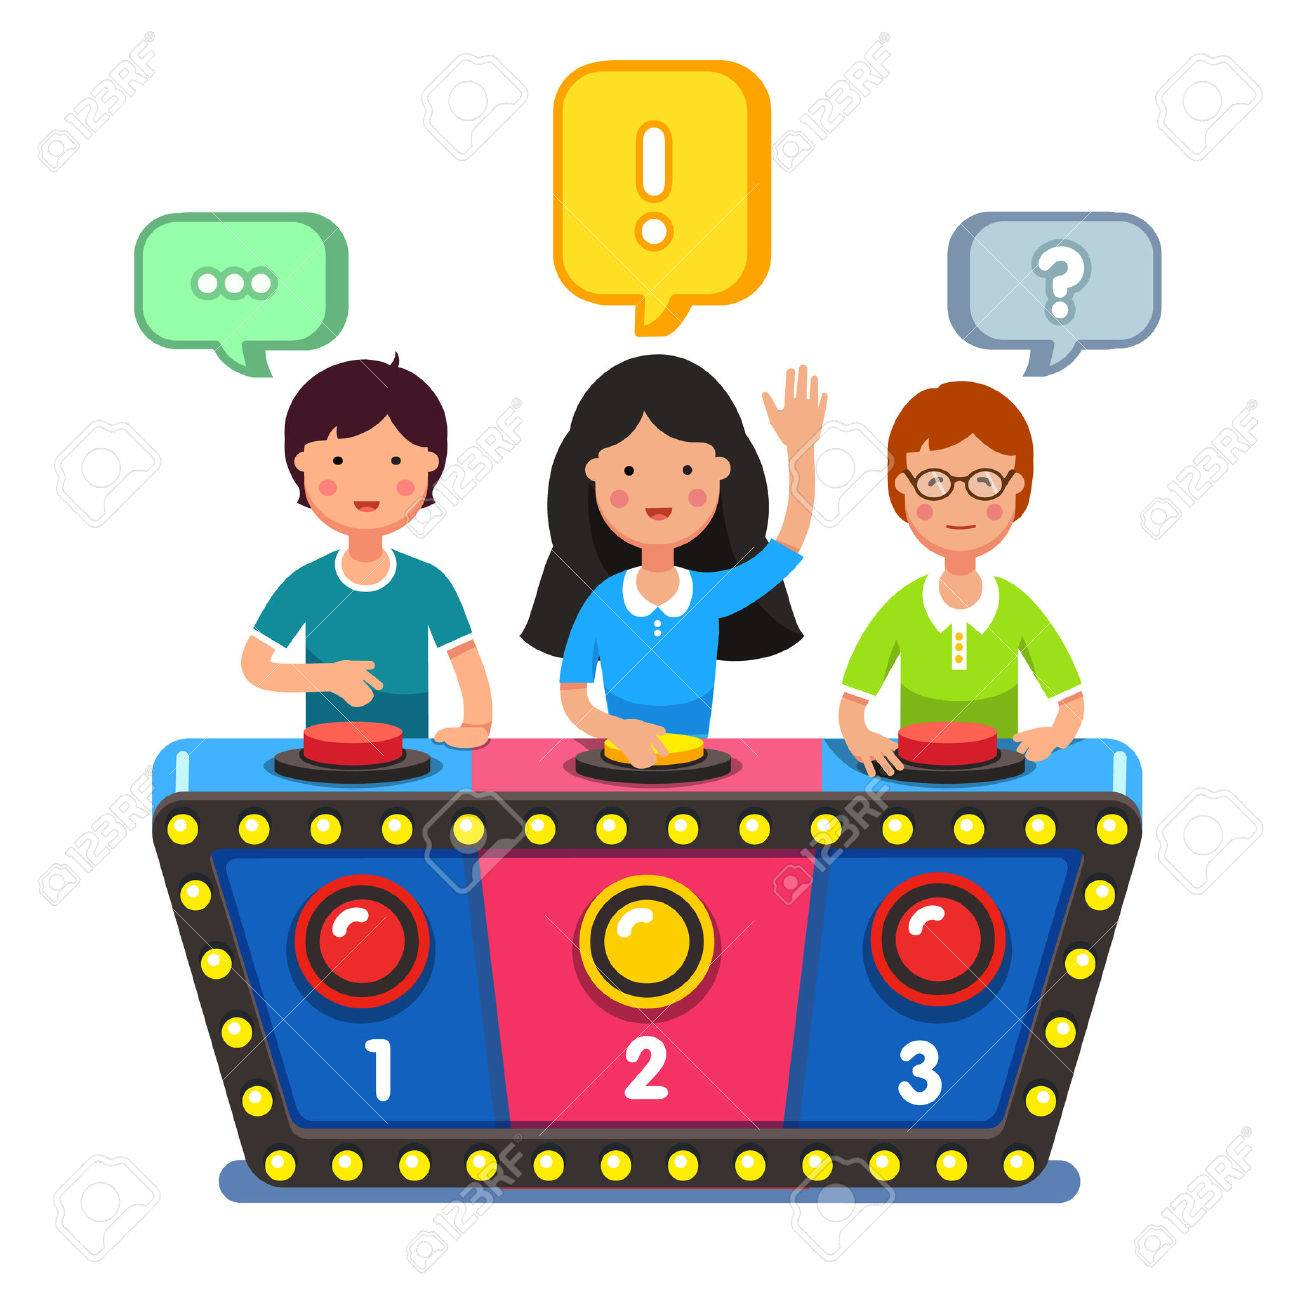 Game show stand clipart clip stock Quiz Show Game Concept Players Answering Questions Standing At ... clip stock